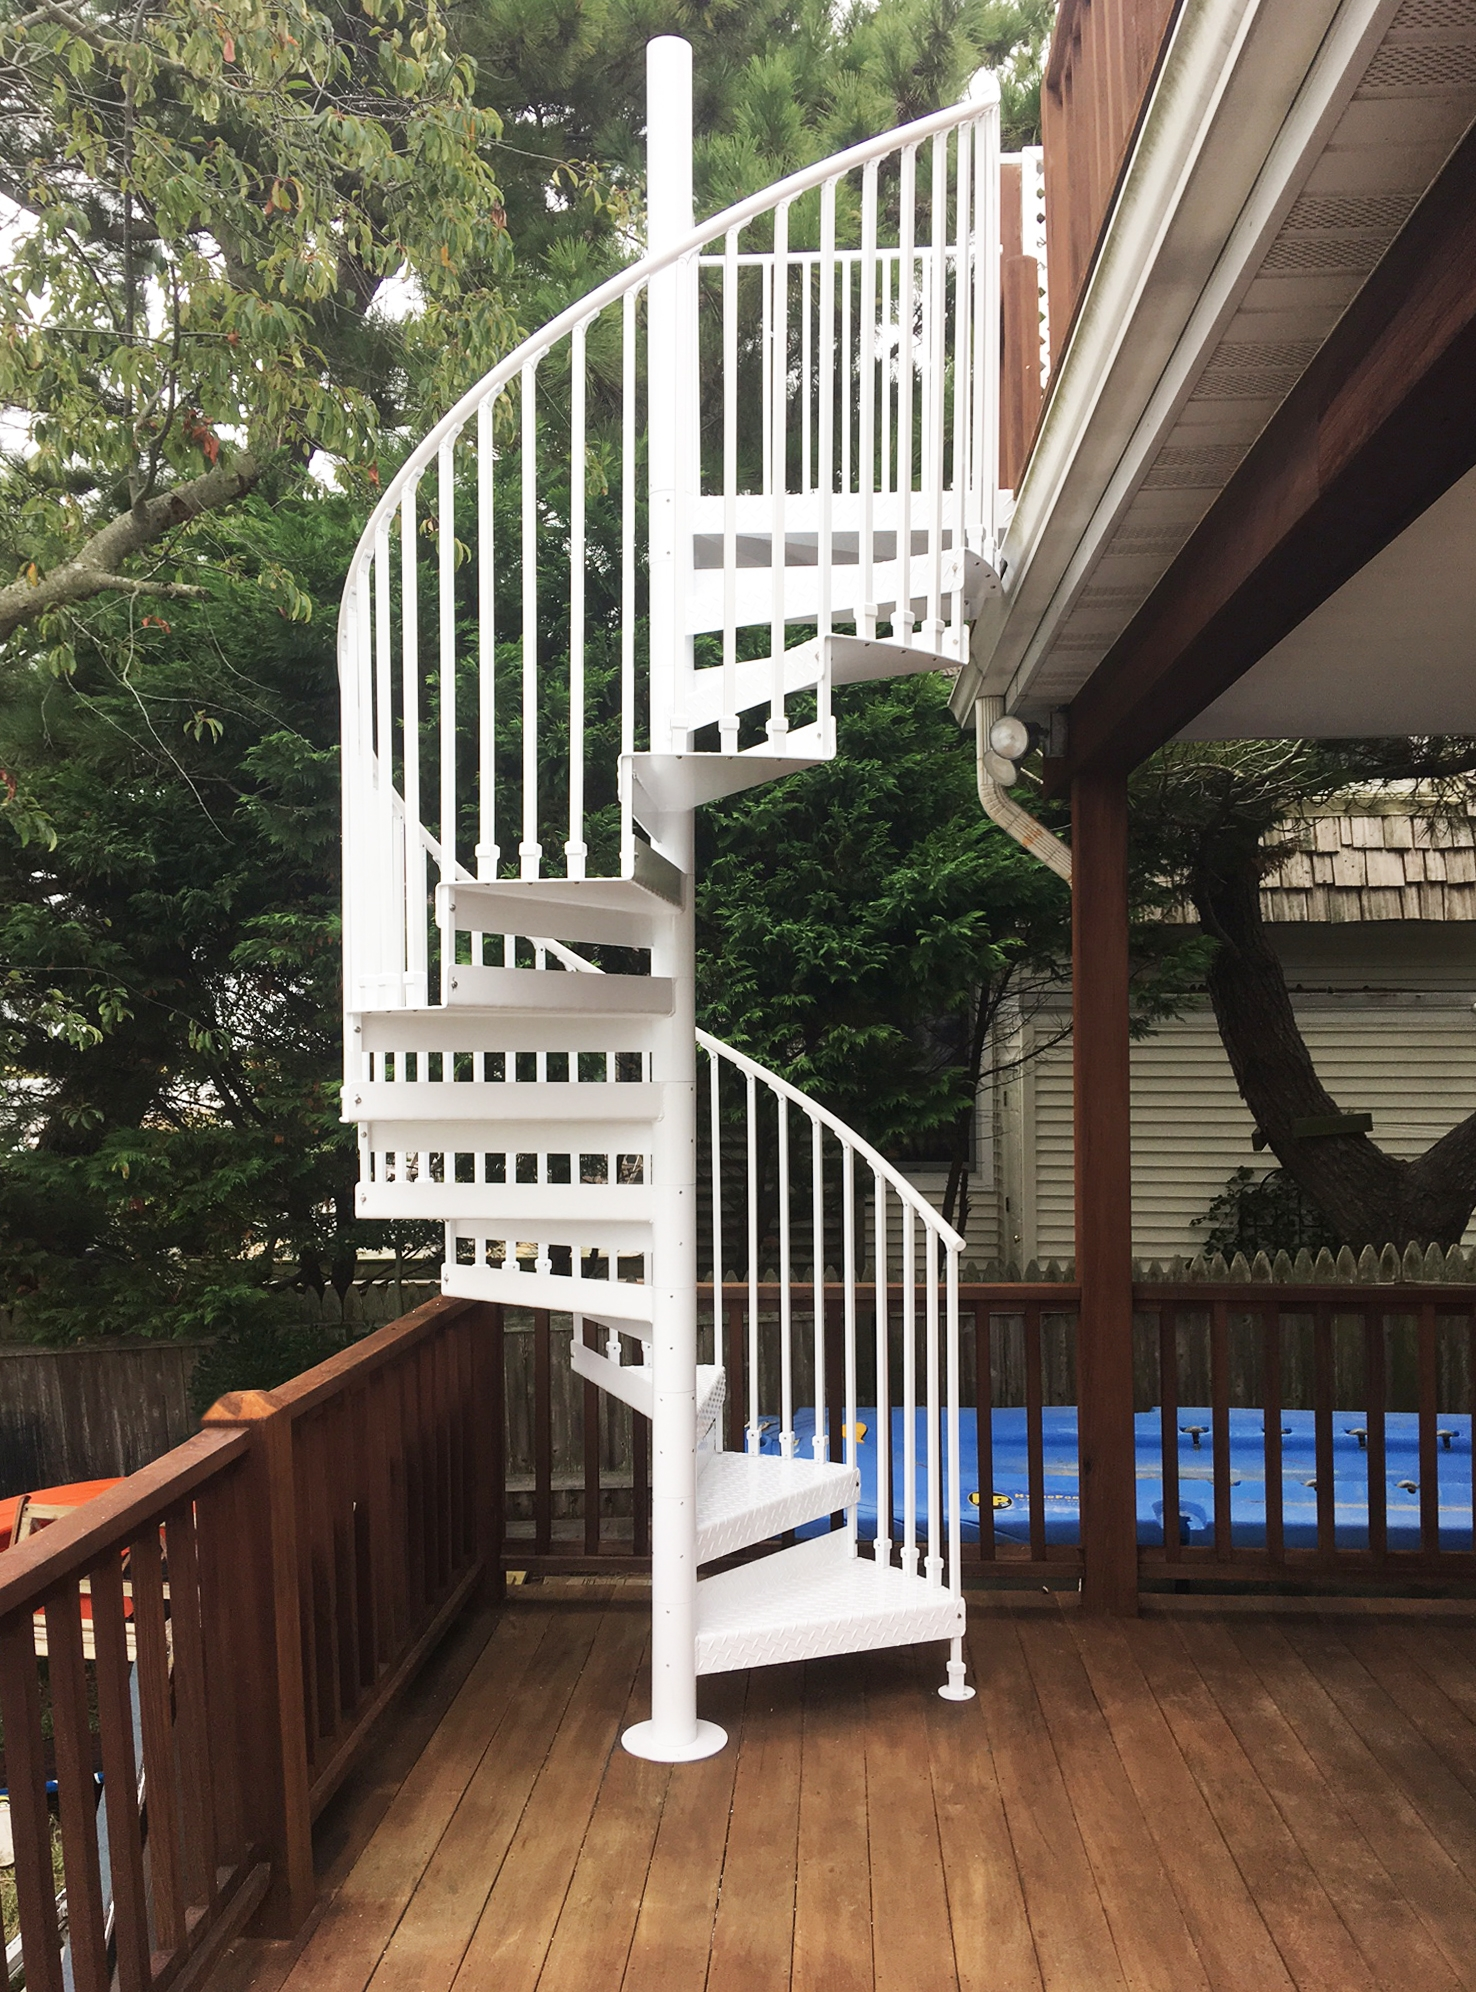 Discover The Ultimate Staircase Alternative Trex Spiral Stairs | Exterior Metal Spiral Staircase | Interior | Outdoor | Free Standing | Custom Exterior | Model